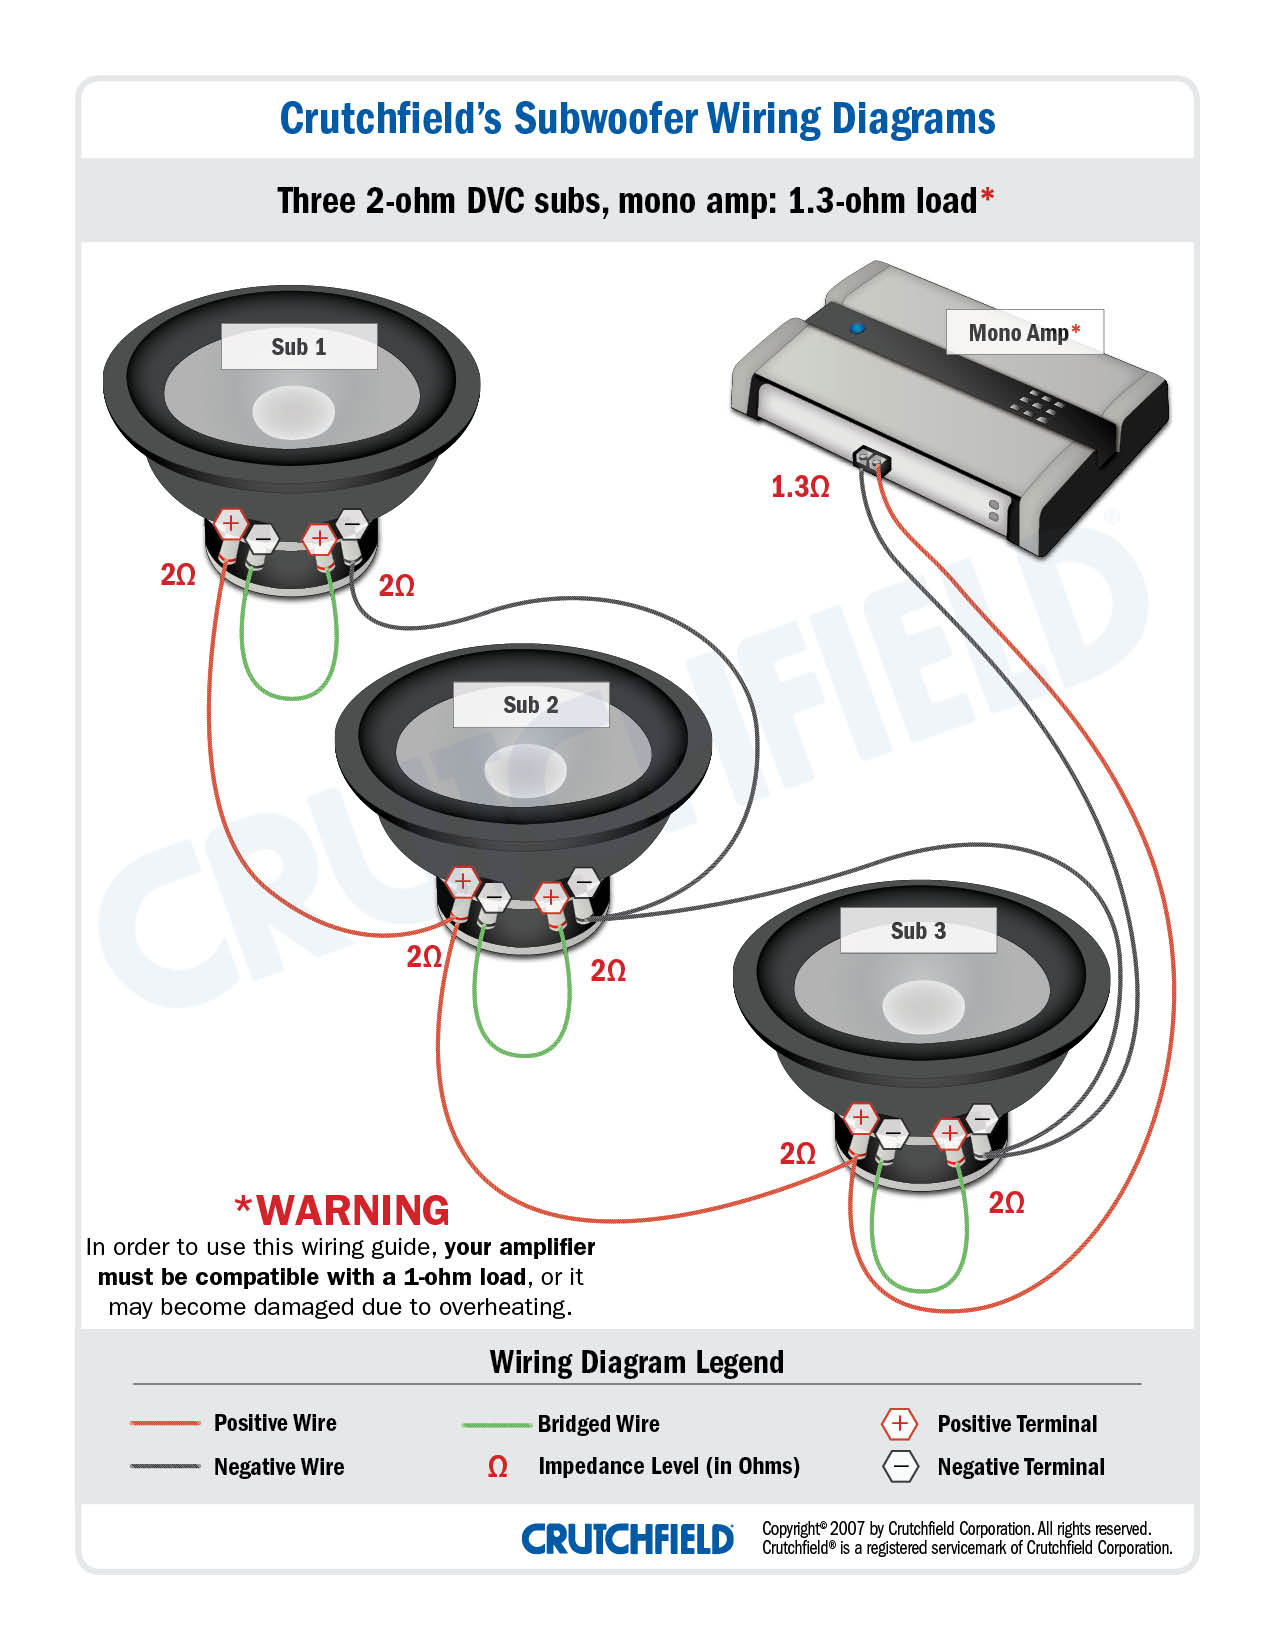 3 DVC 2 ohm mono low imp subwoofer wiring diagrams 2 amps 2 subs wiring diagram at webbmarketing.co